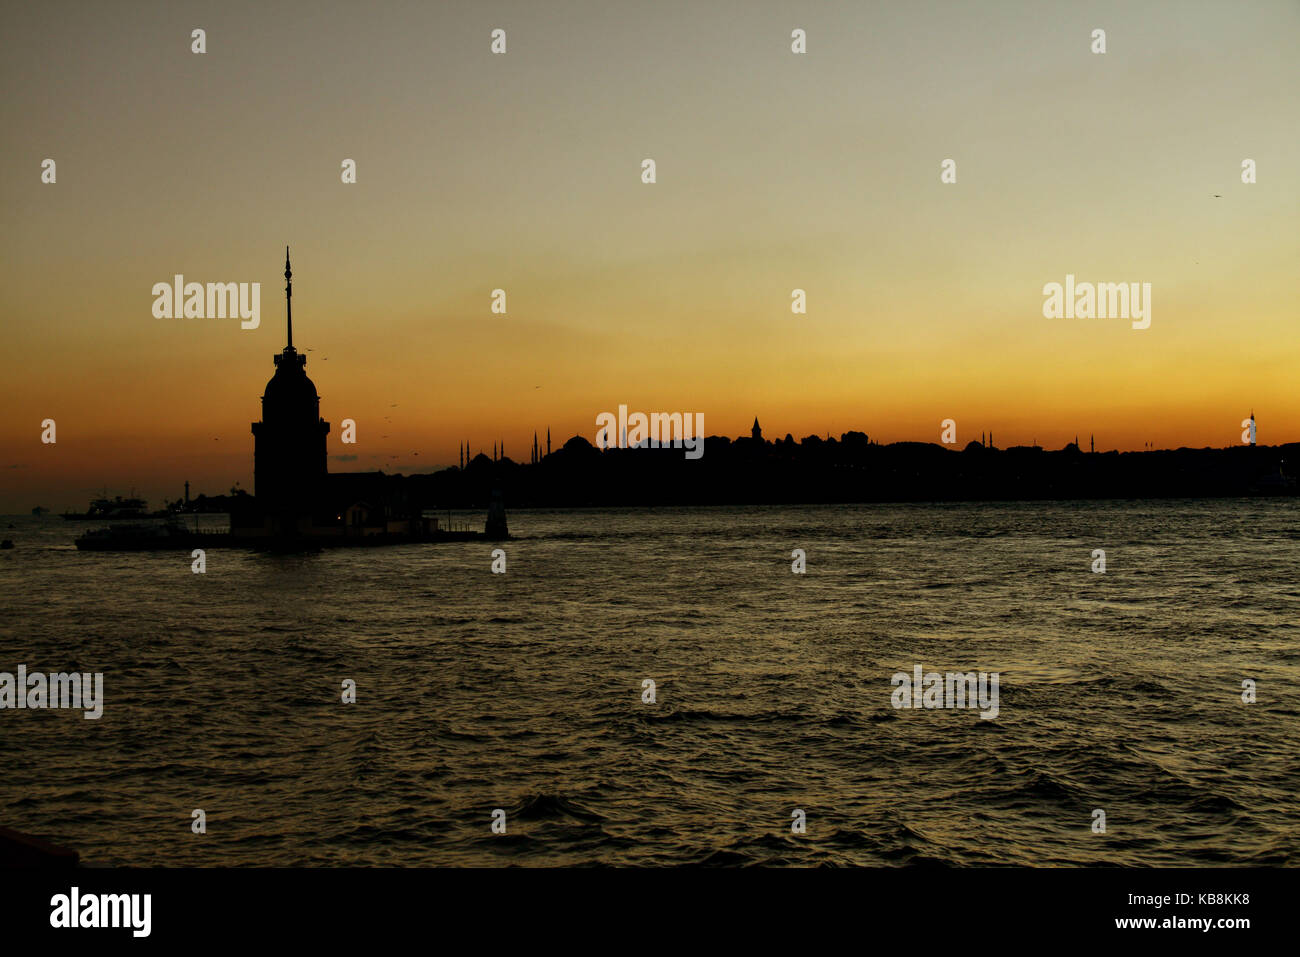 Silhouete of Maiden Tower, Istanbul, Turkey - Stock Image